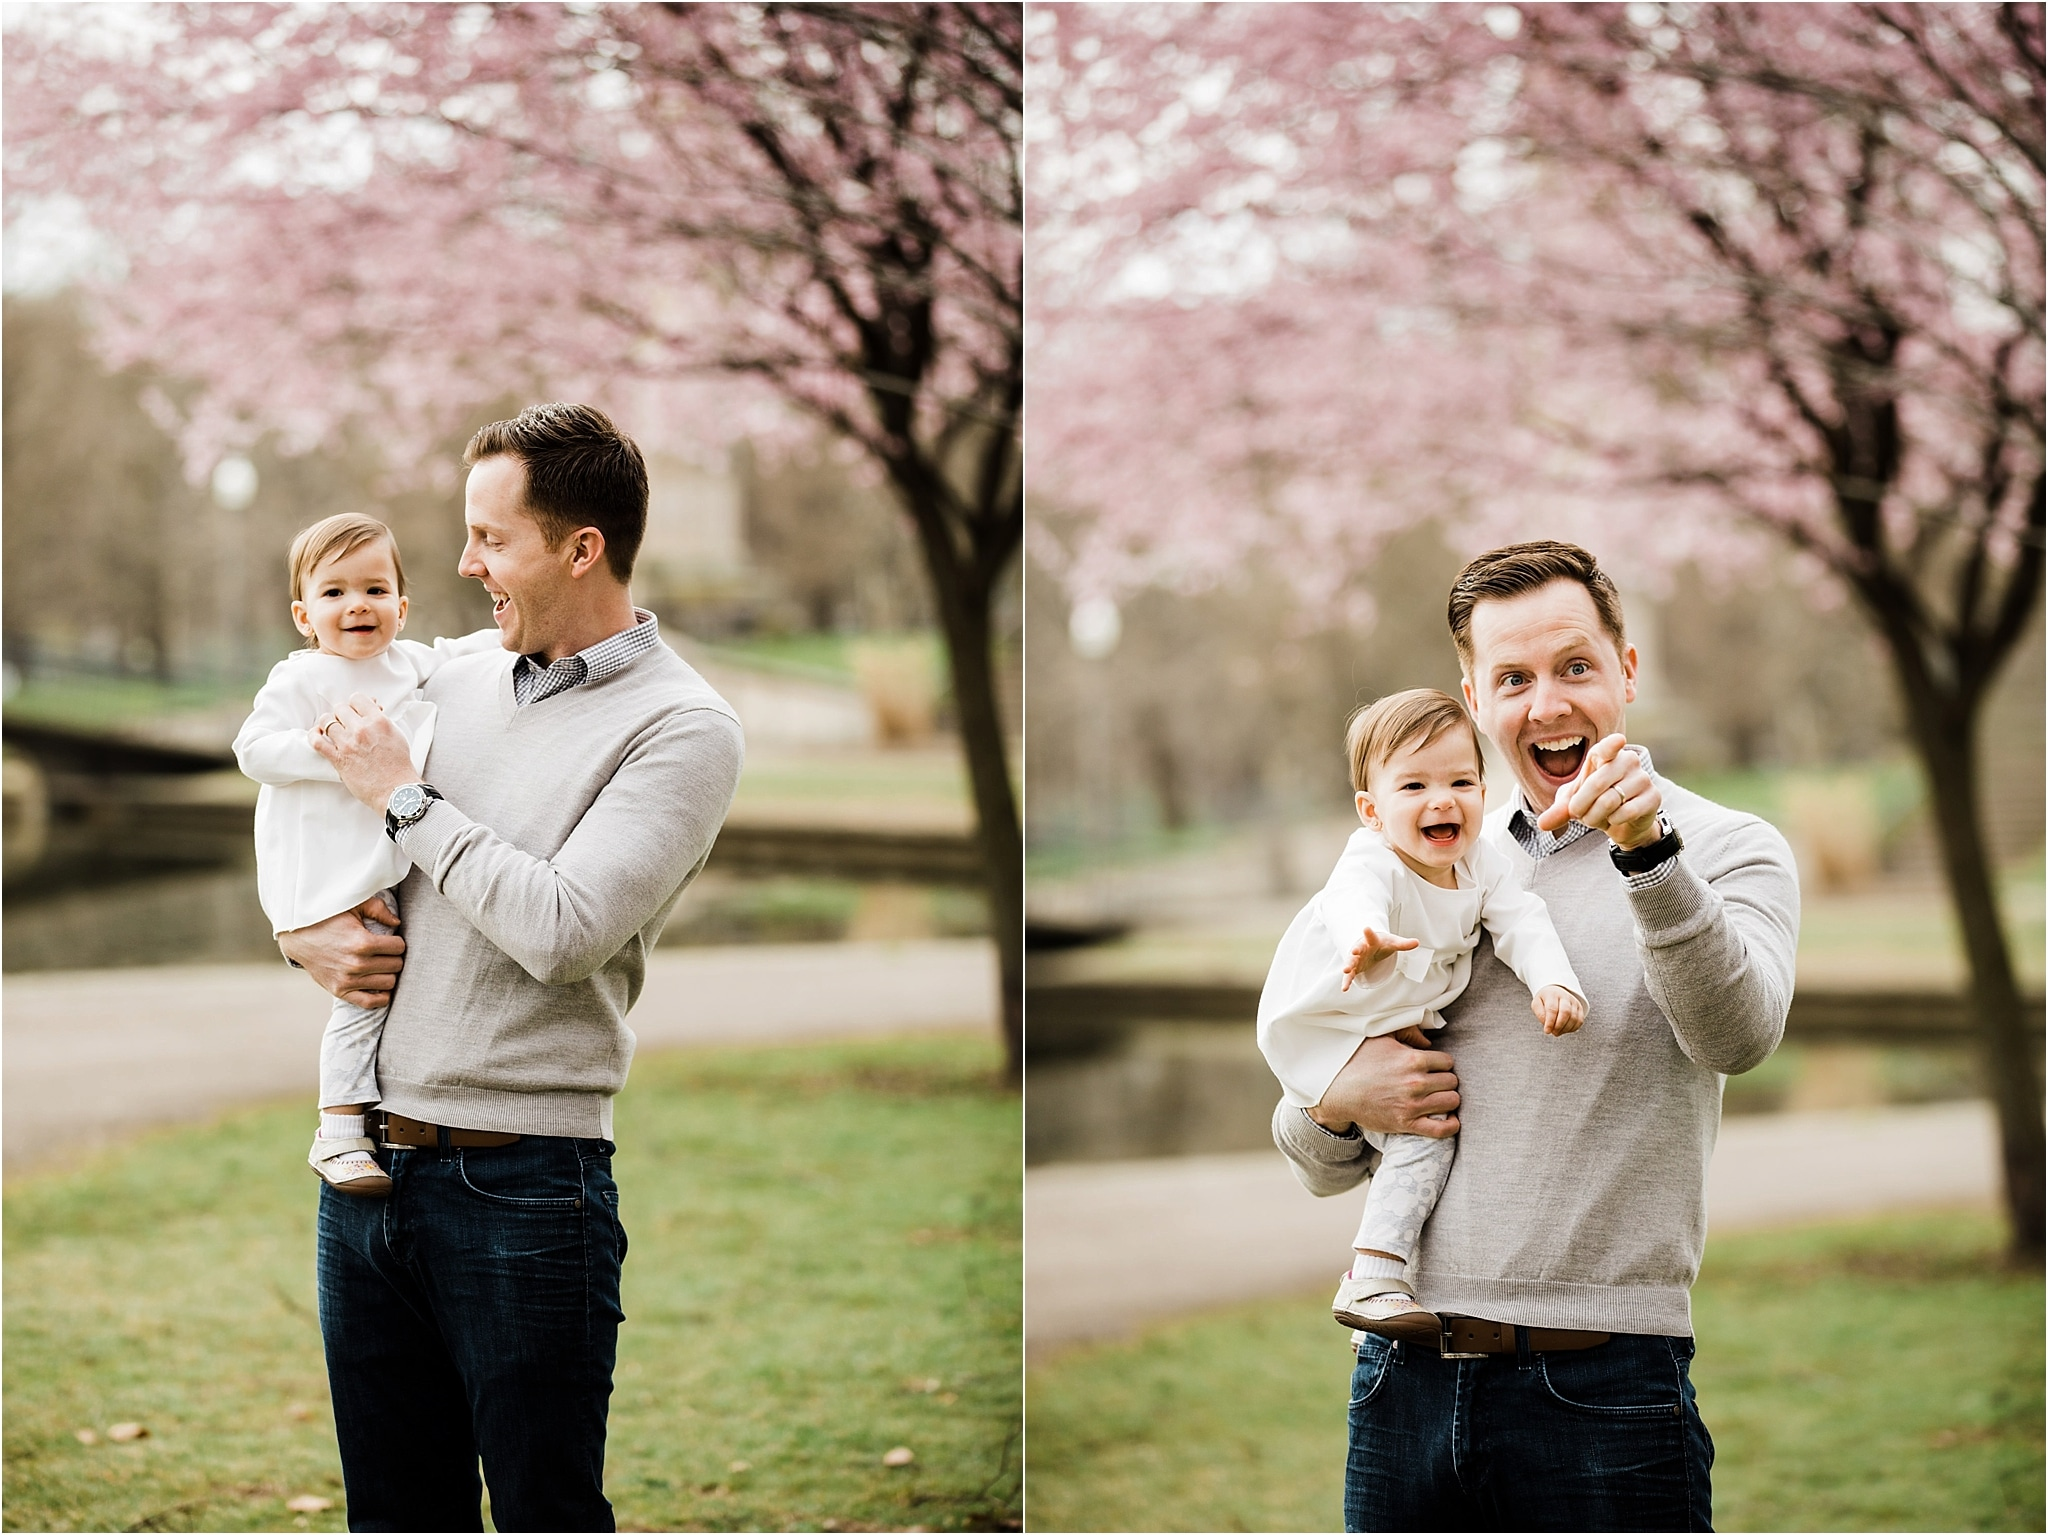 Spring Family photos at West Park in Pittsburgh